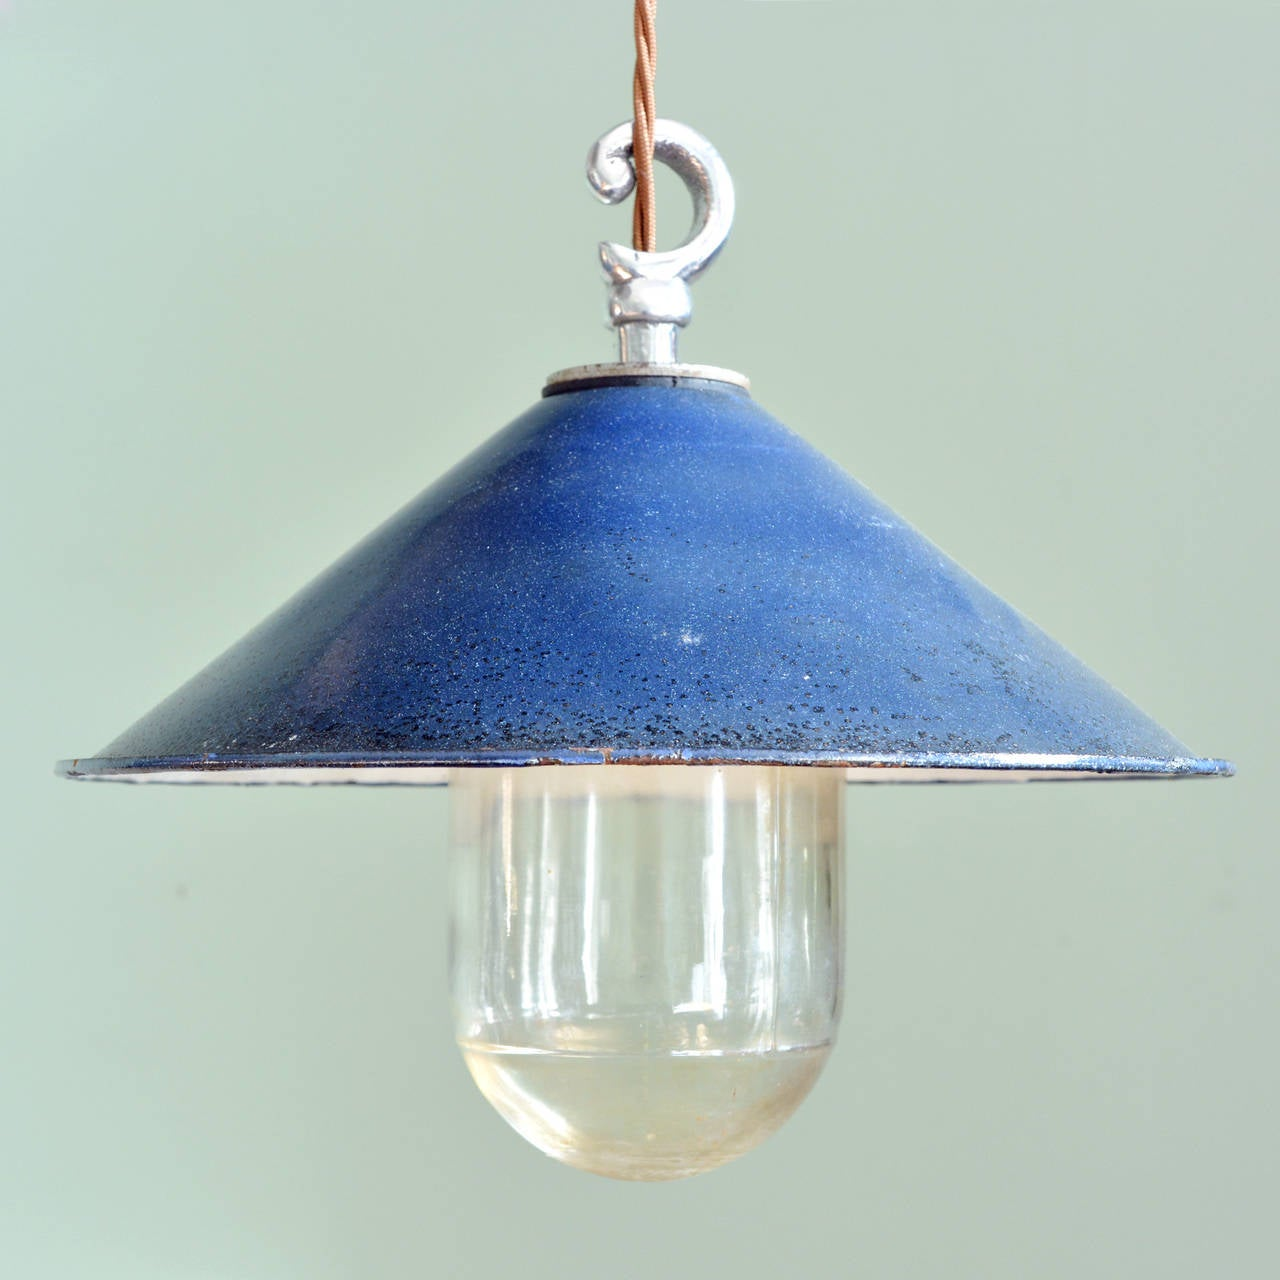 Small Enamel Pendant Lights For Sale At 1stdibs